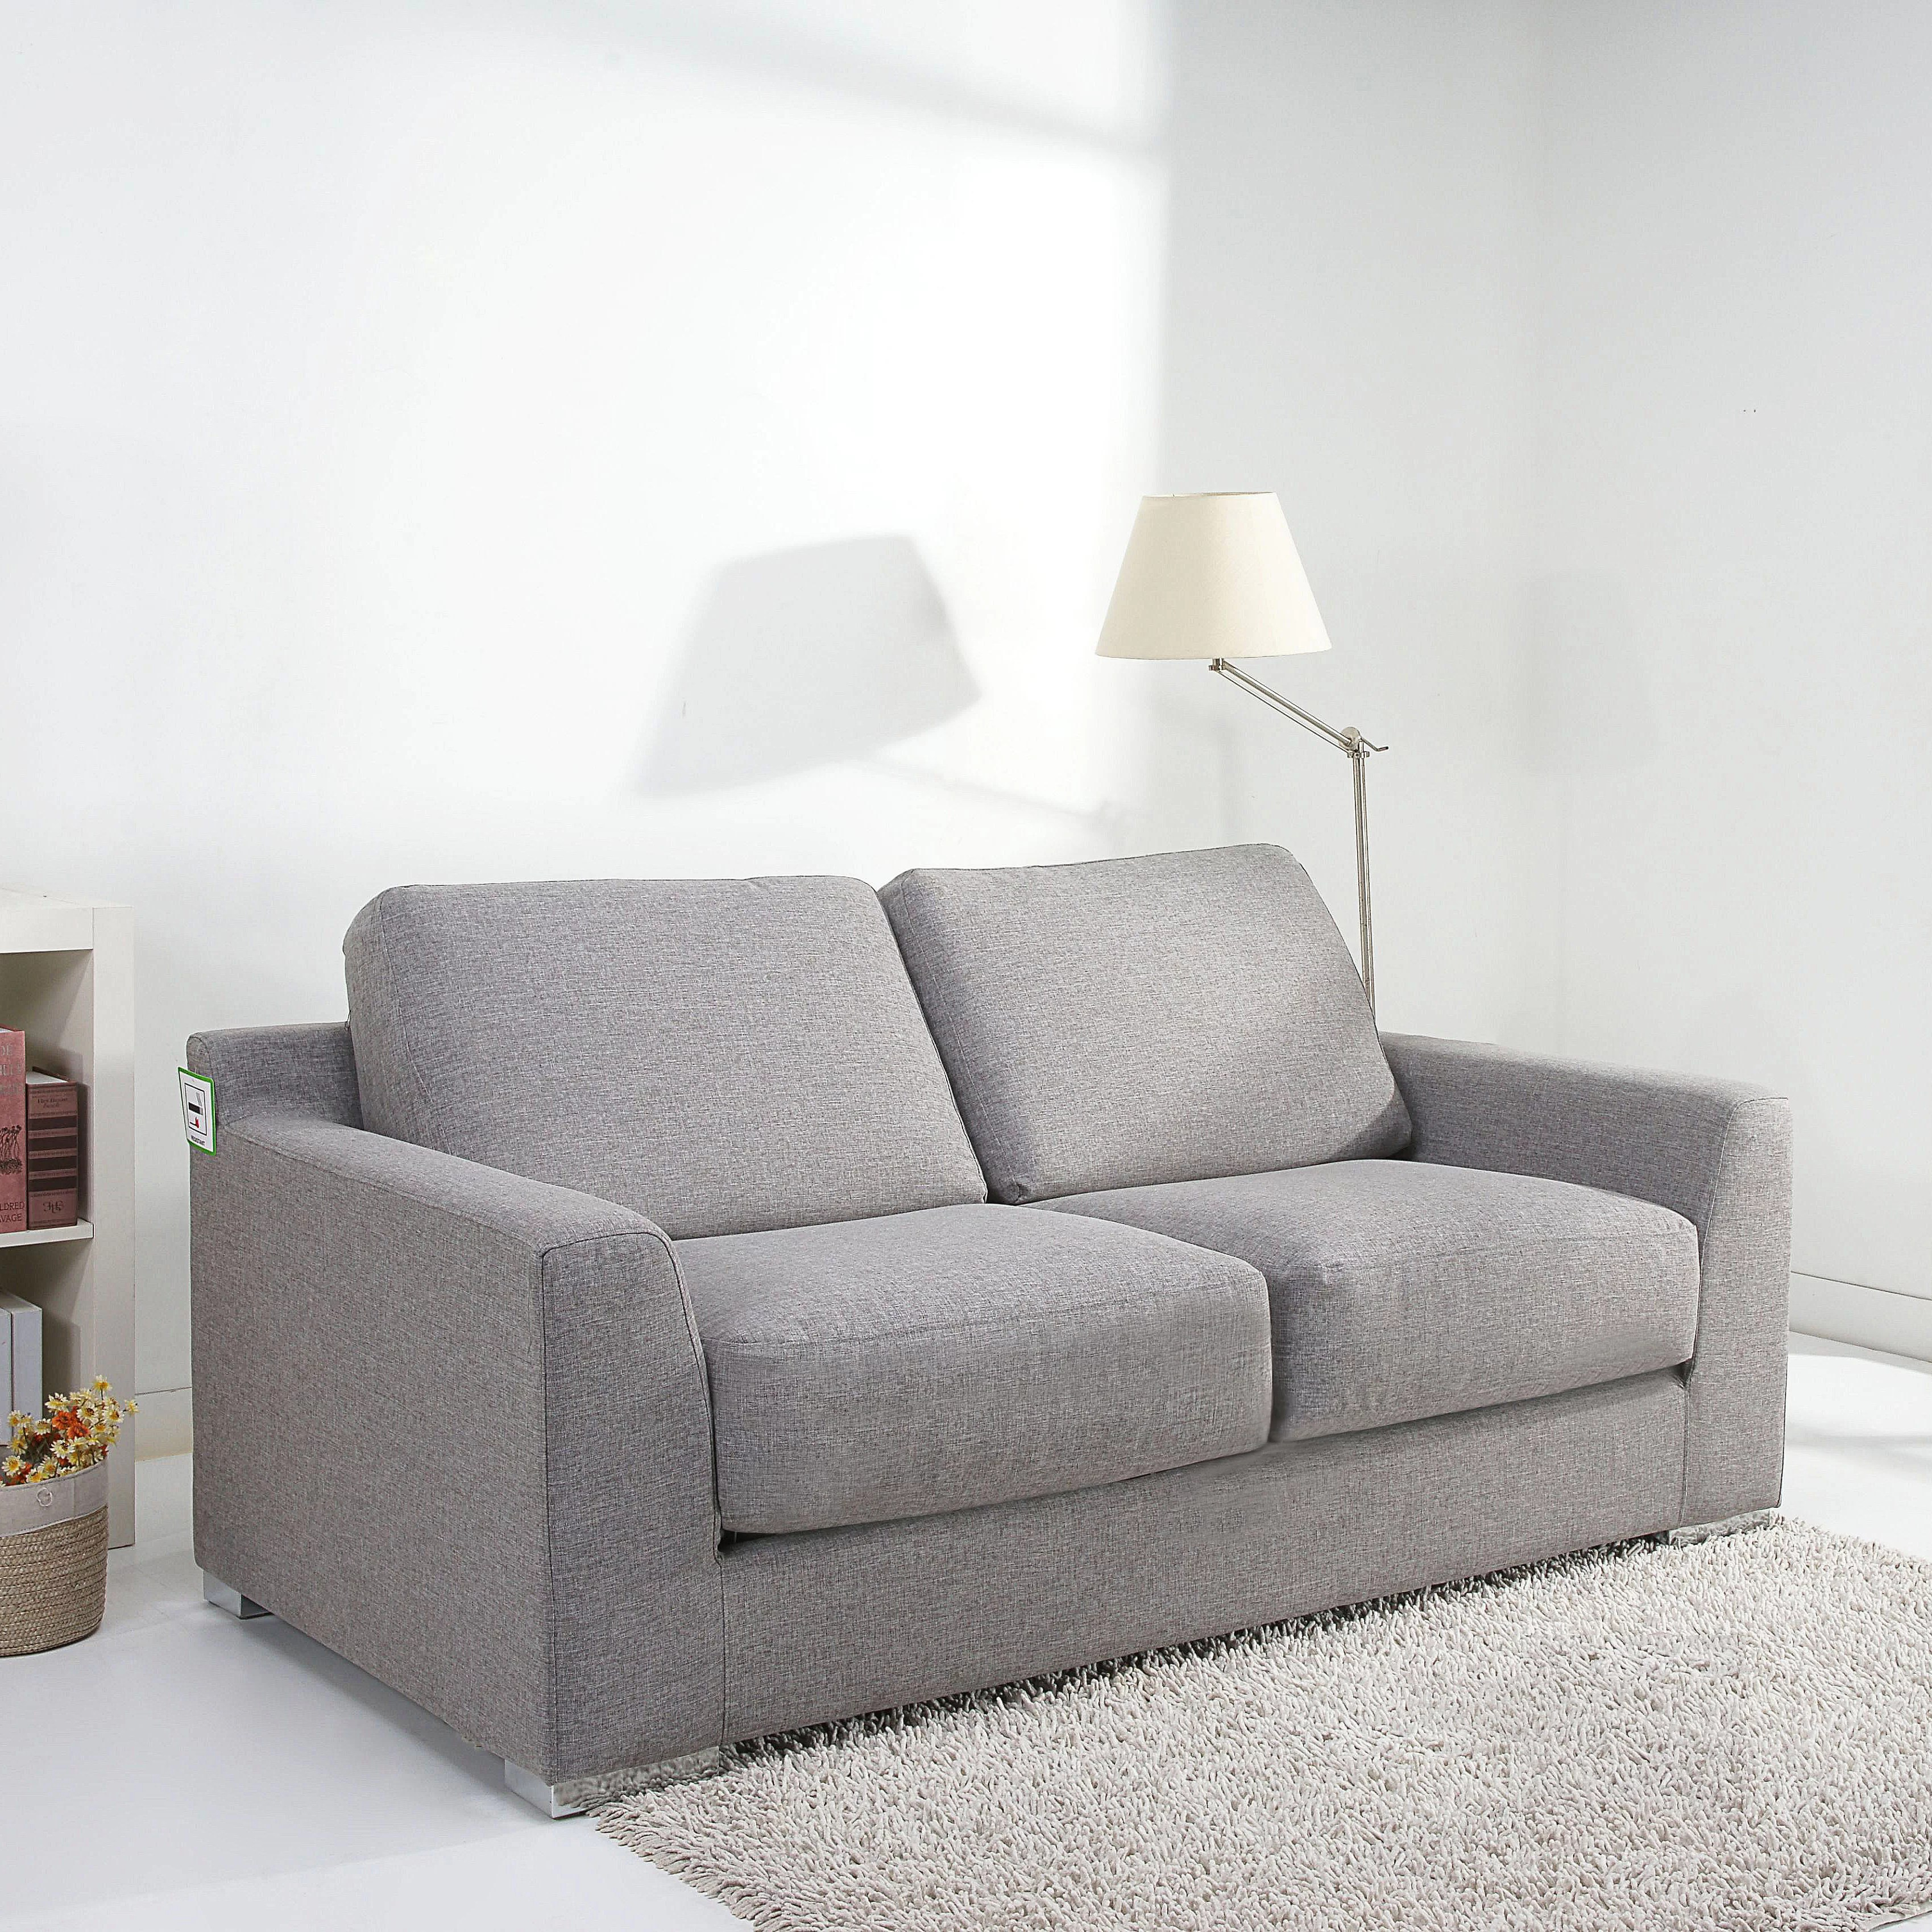 fold out sofa bed uk ashley furniture reclining sectional leader lifestyle paris 2 seater